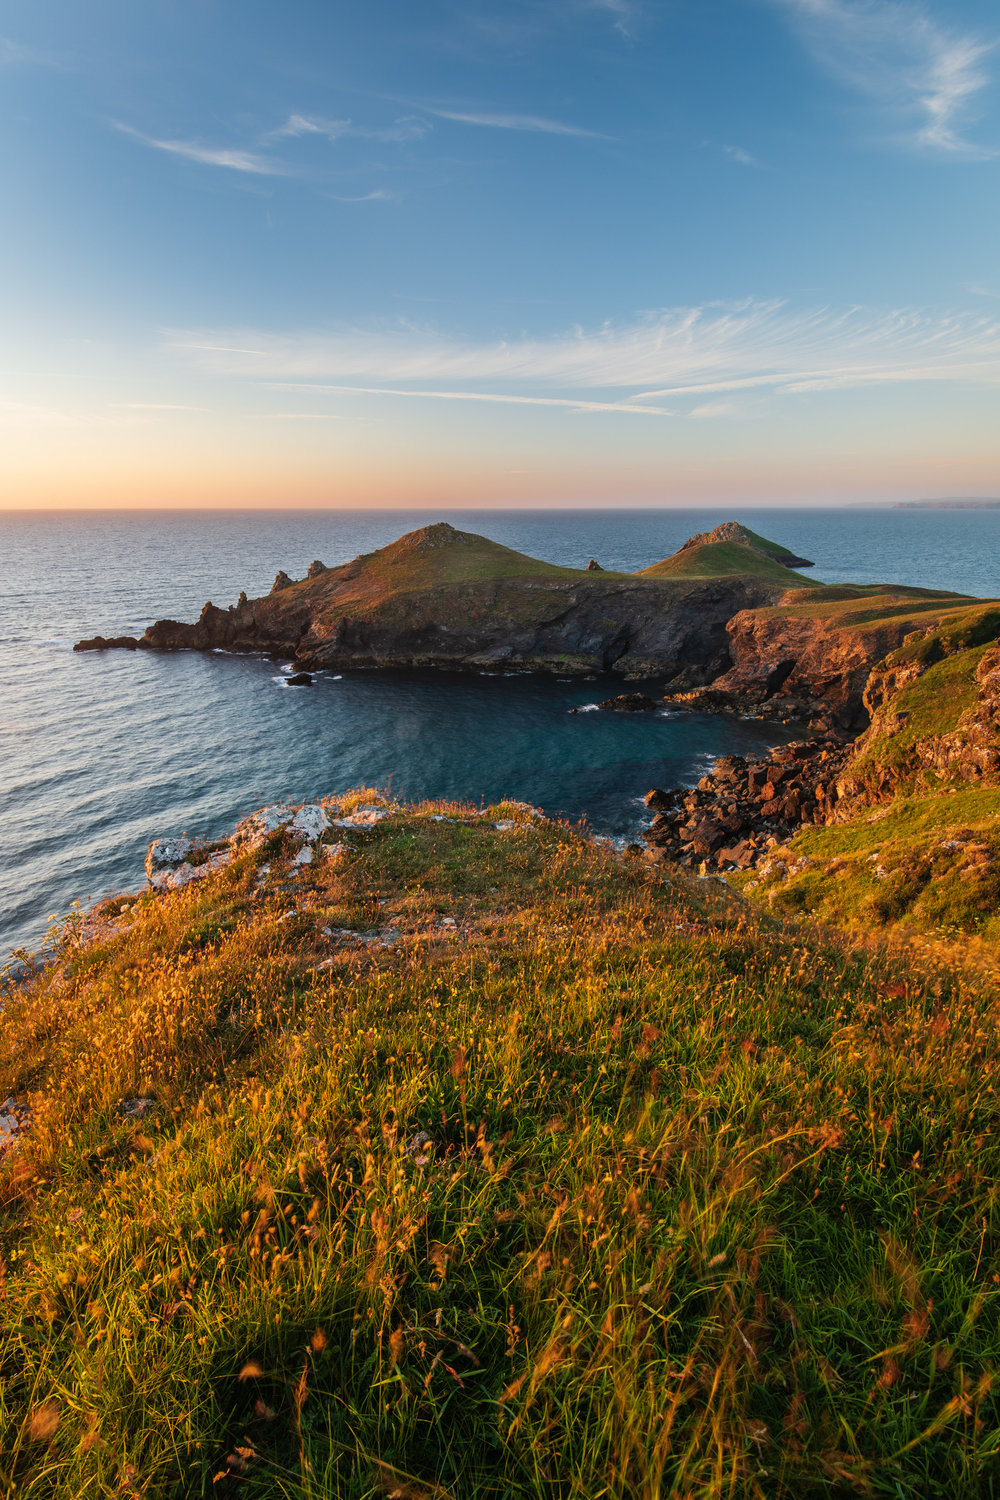 Summer at The Rumps #2 (Cornwall)